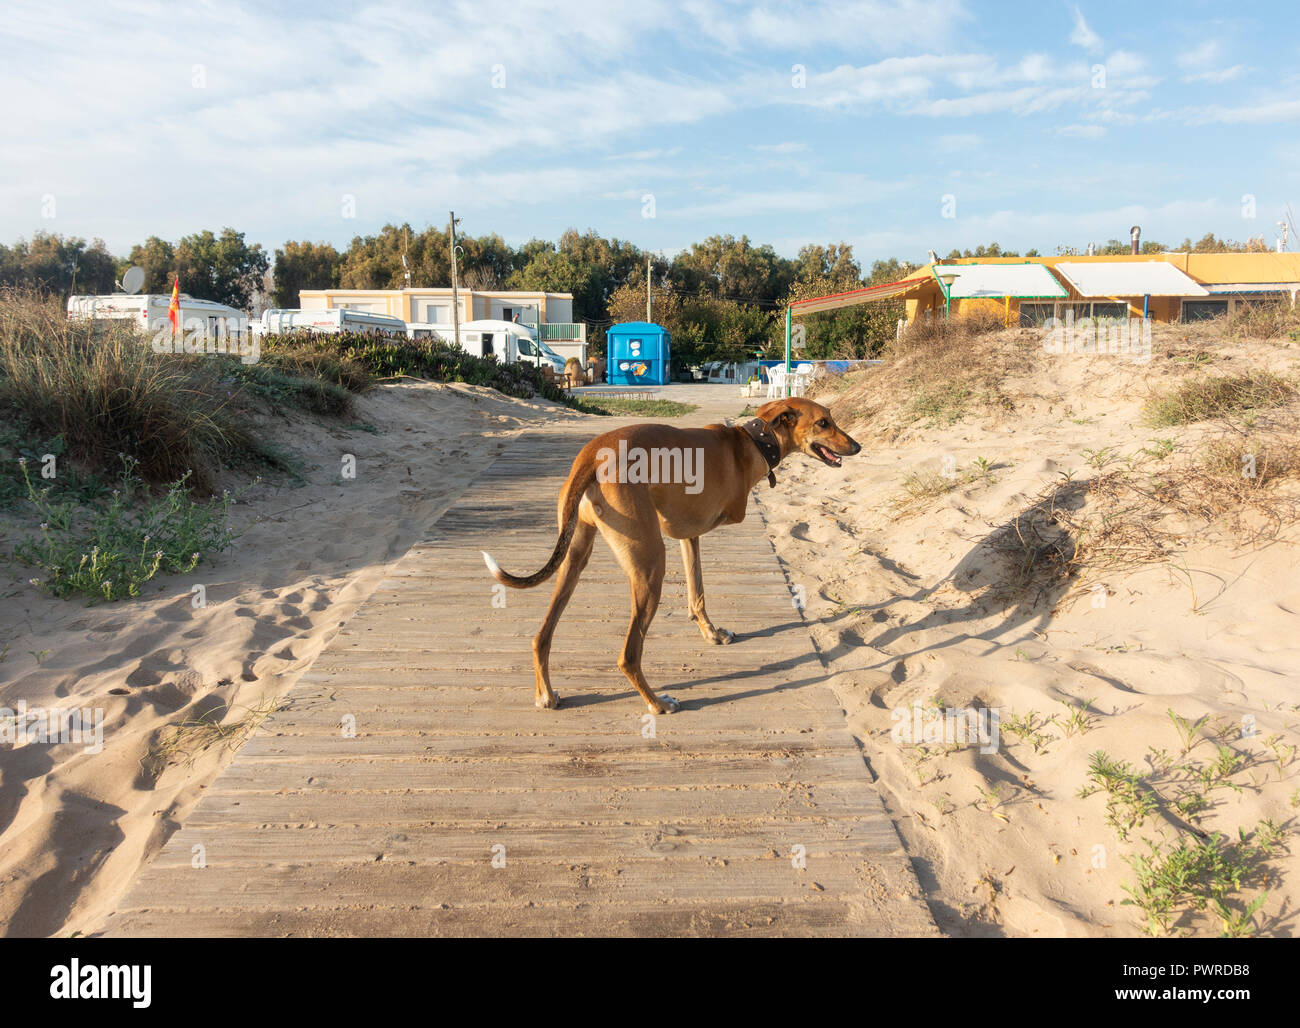 Whippet breed dog with three legs on beach in Spain - Stock Image